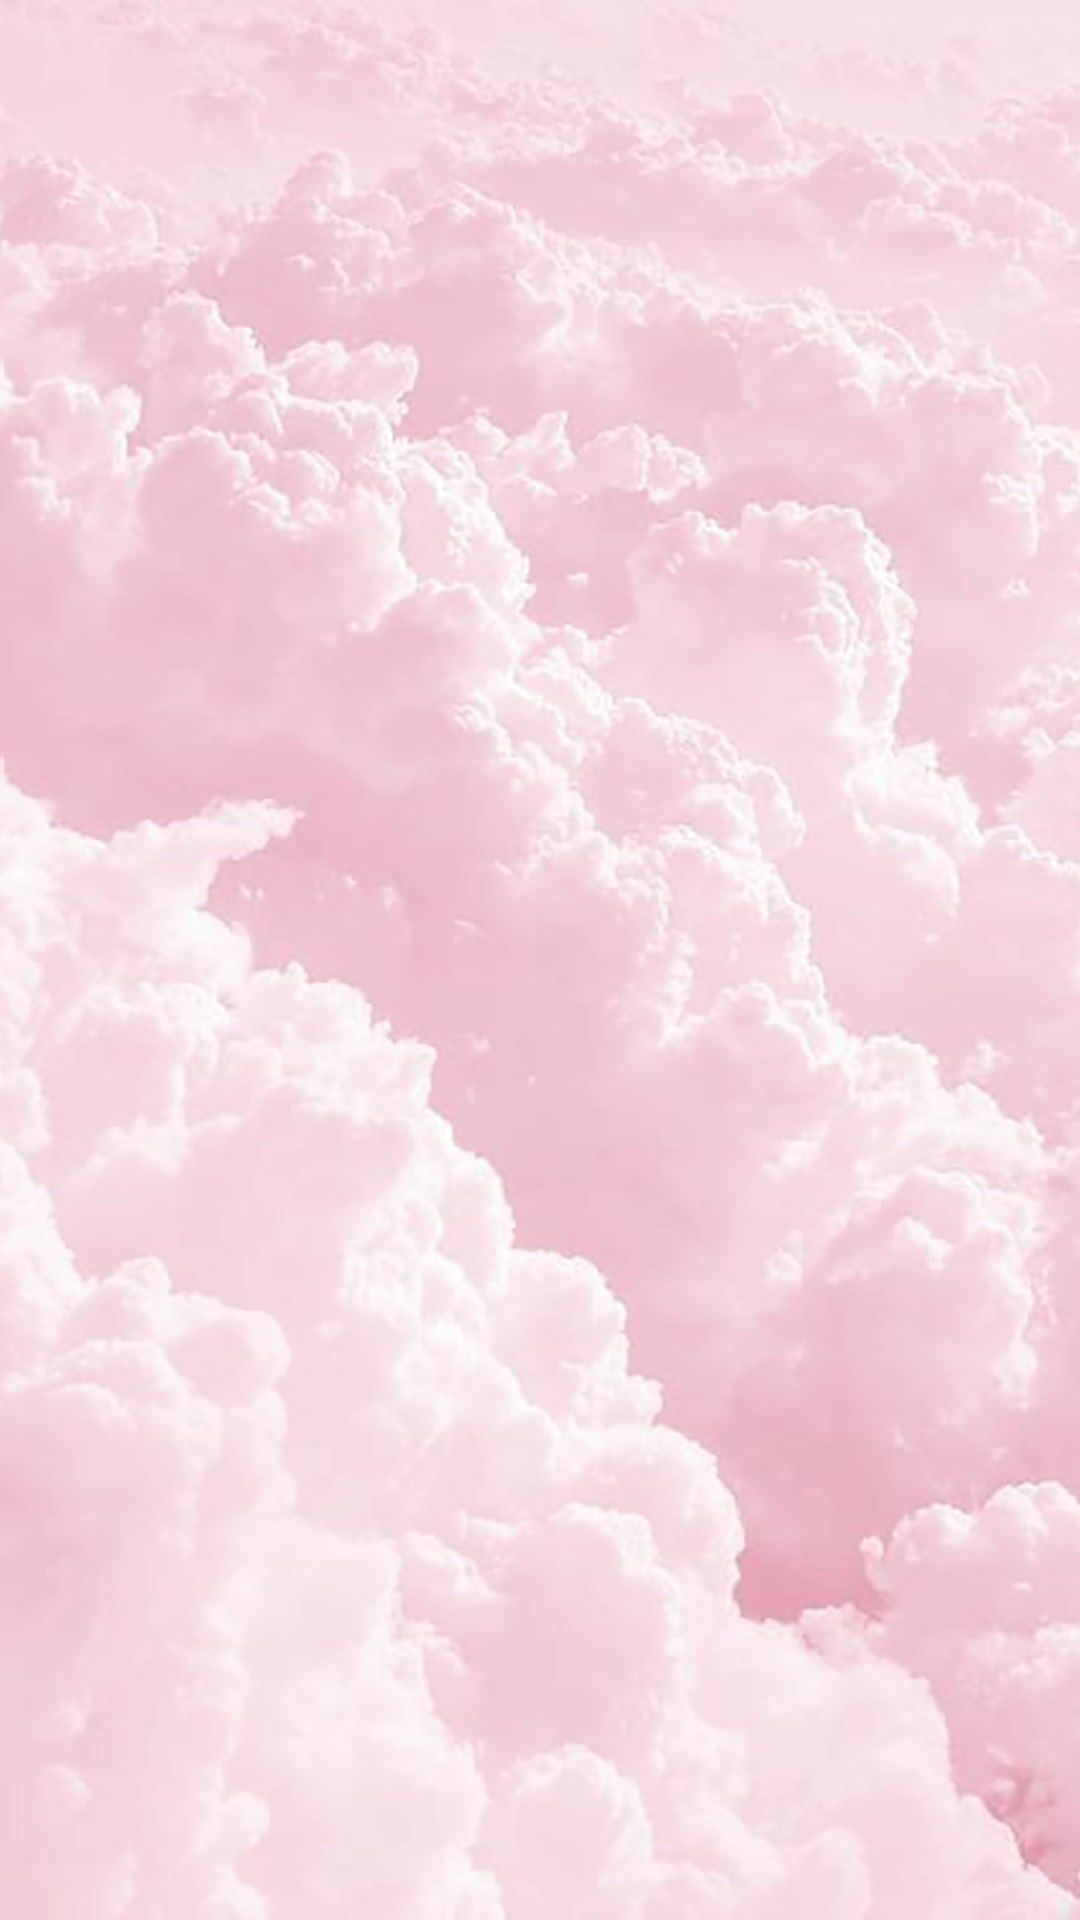 Pastel Pink Brick Picture Pink Clouds Wallpaper Cute Pastel Wallpaper Pastel Pink Wallpaper